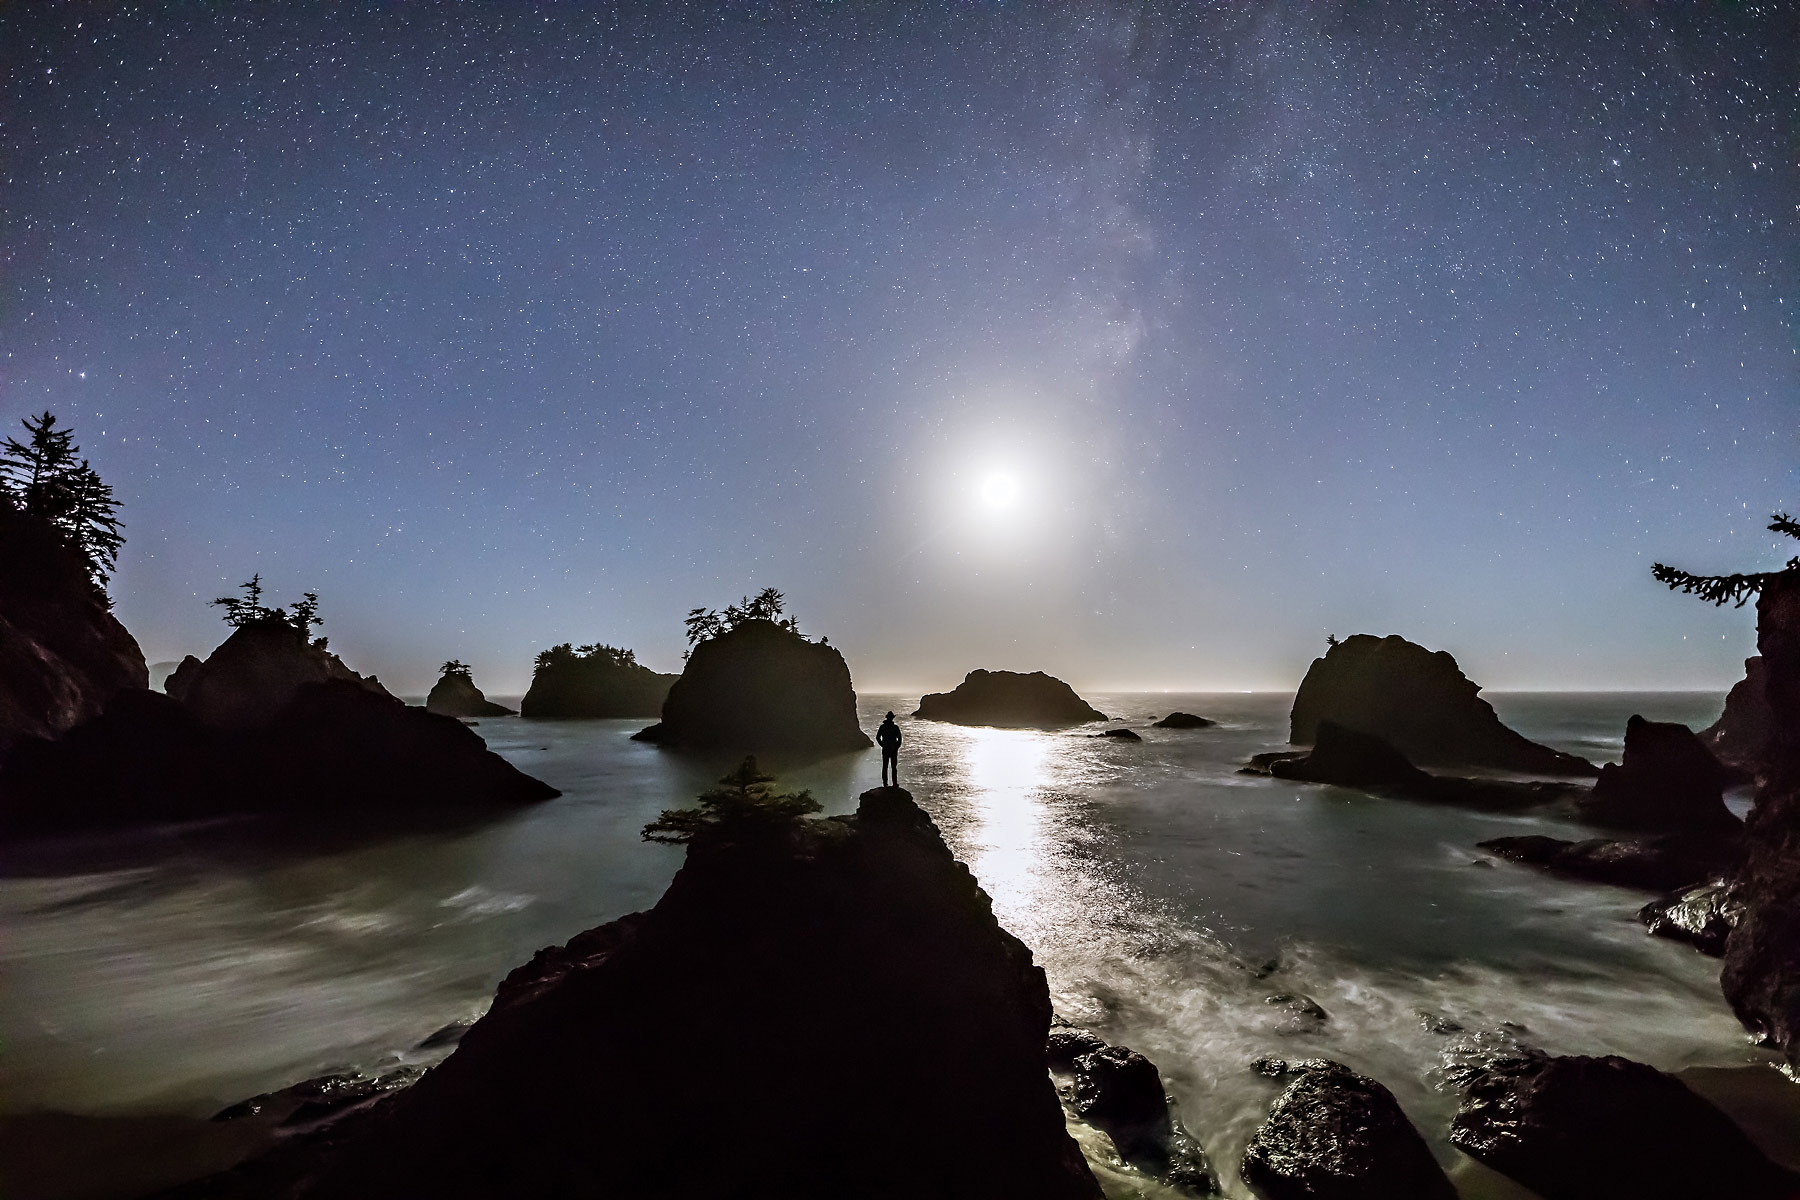 Moon Man under the Milky Way on the Oregon coast.